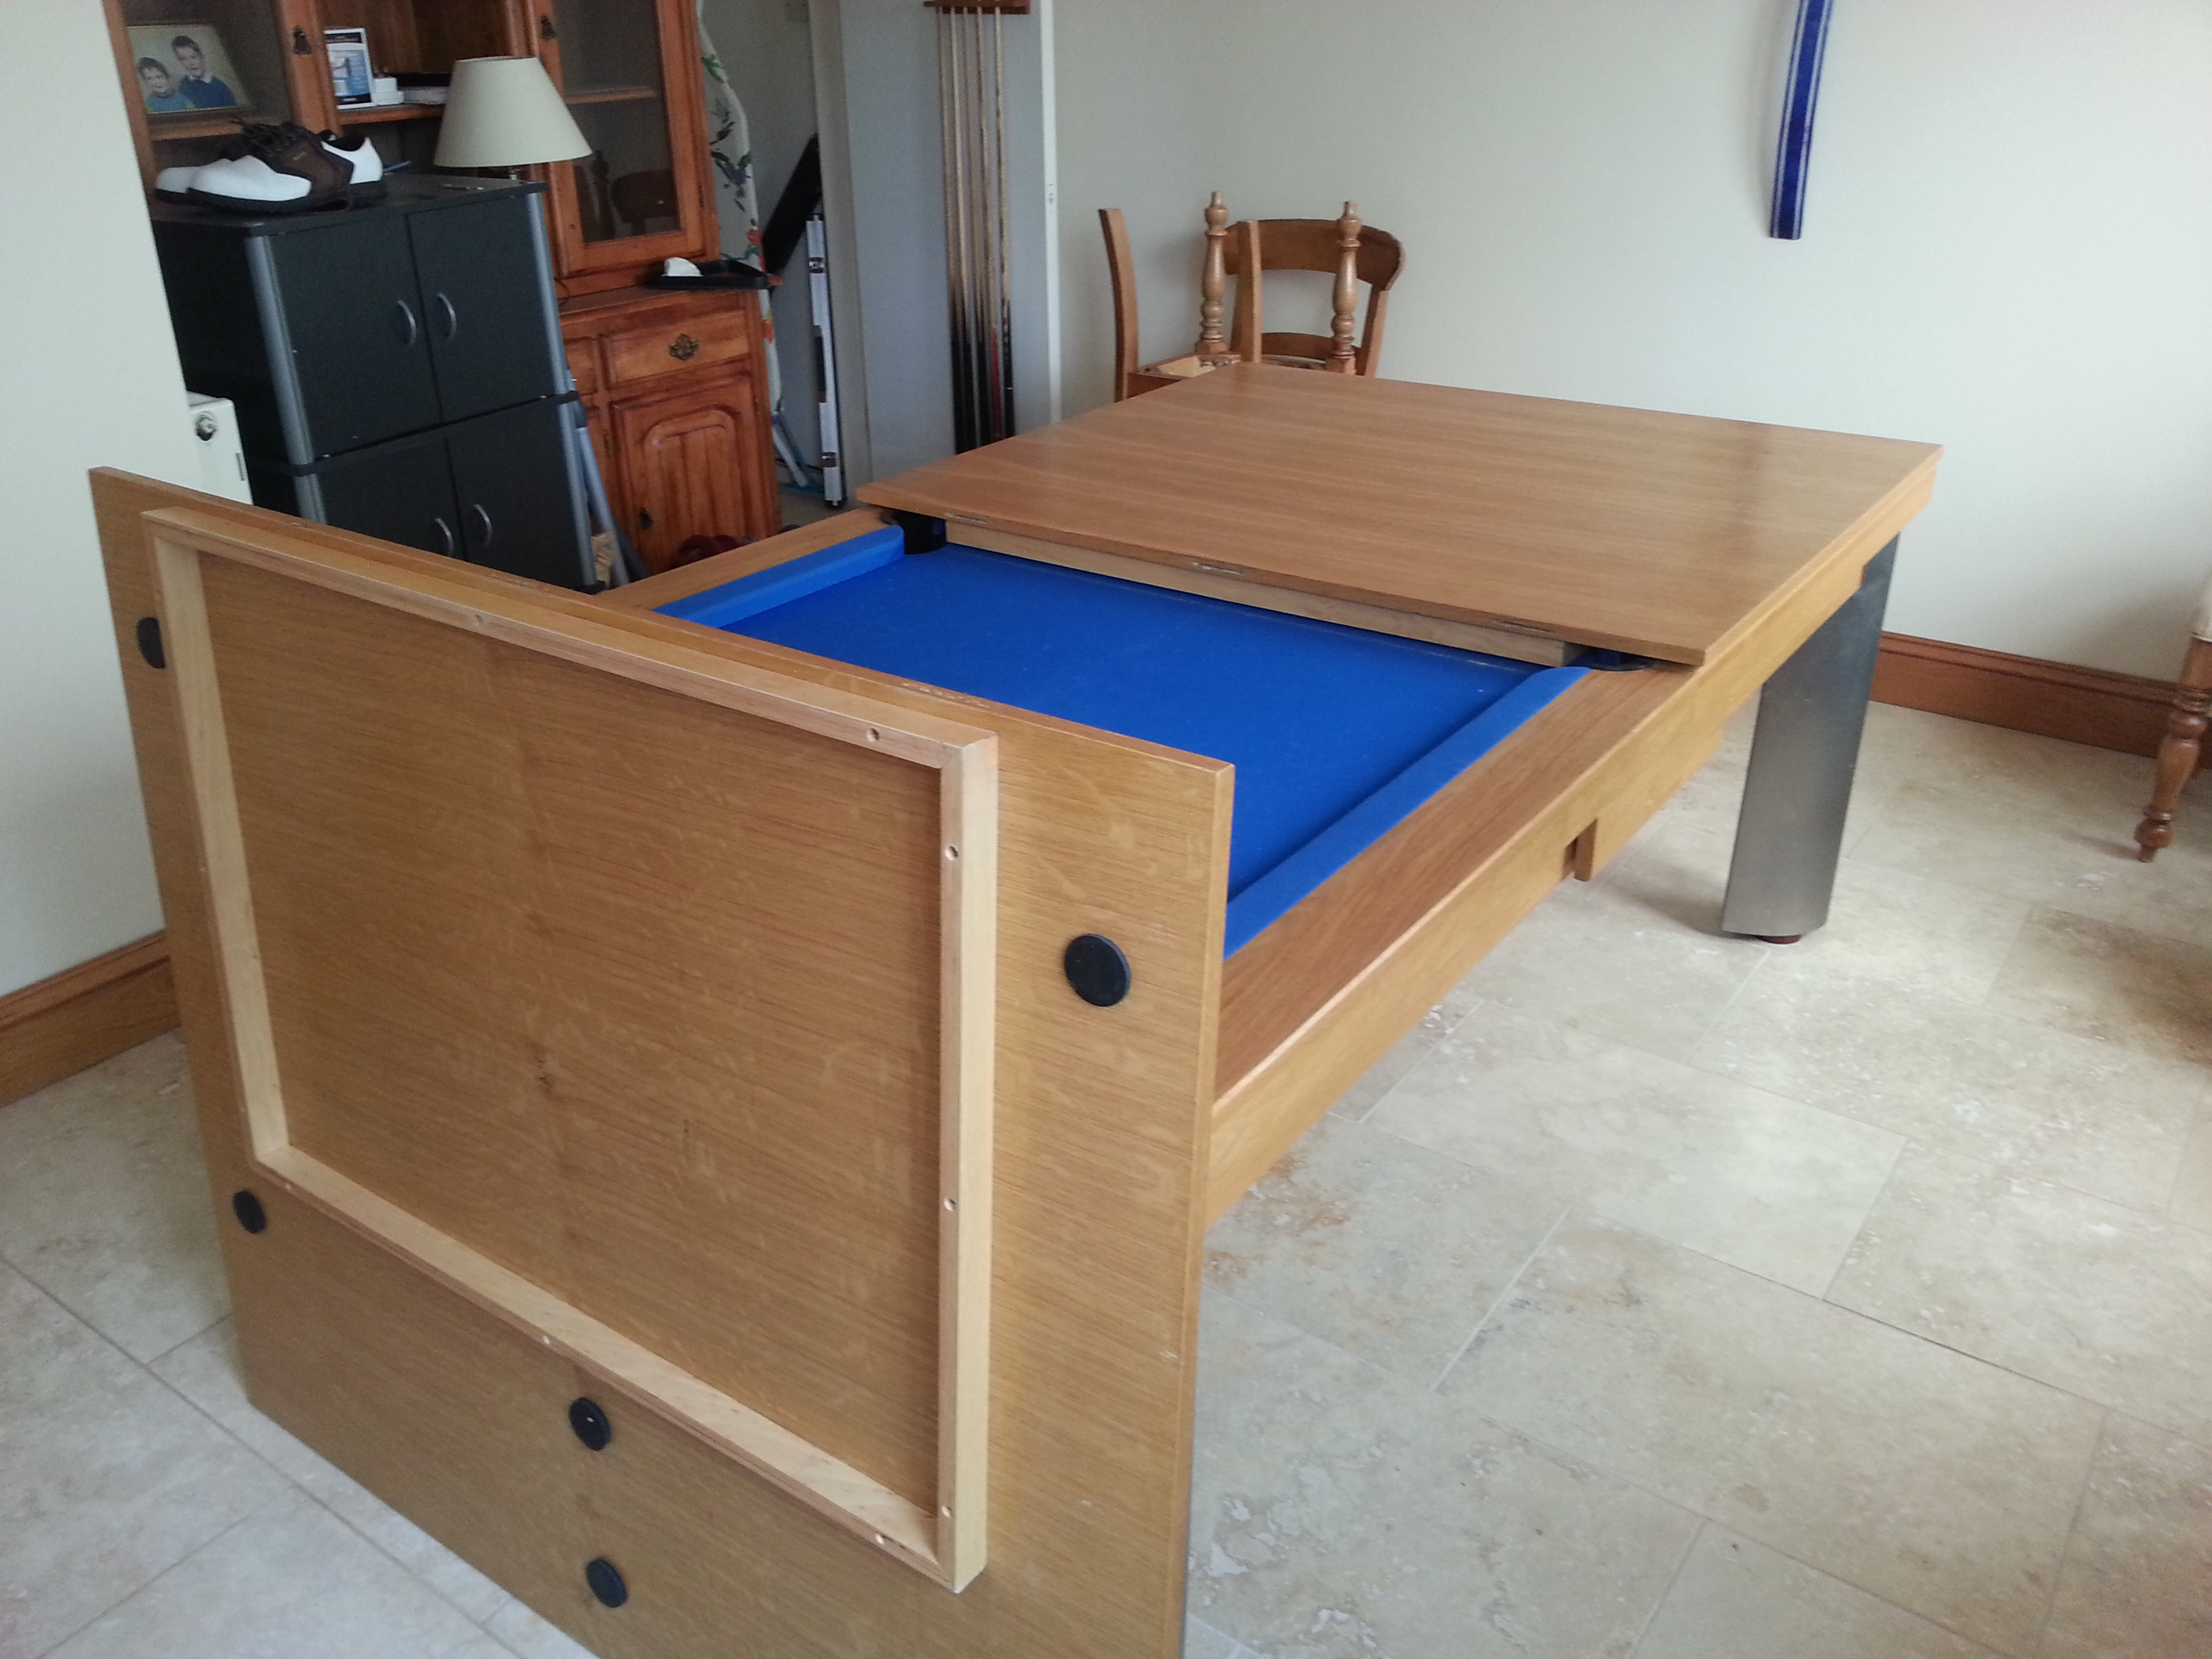 Storing seating from a pool table dining table combo watchthetrailerfo